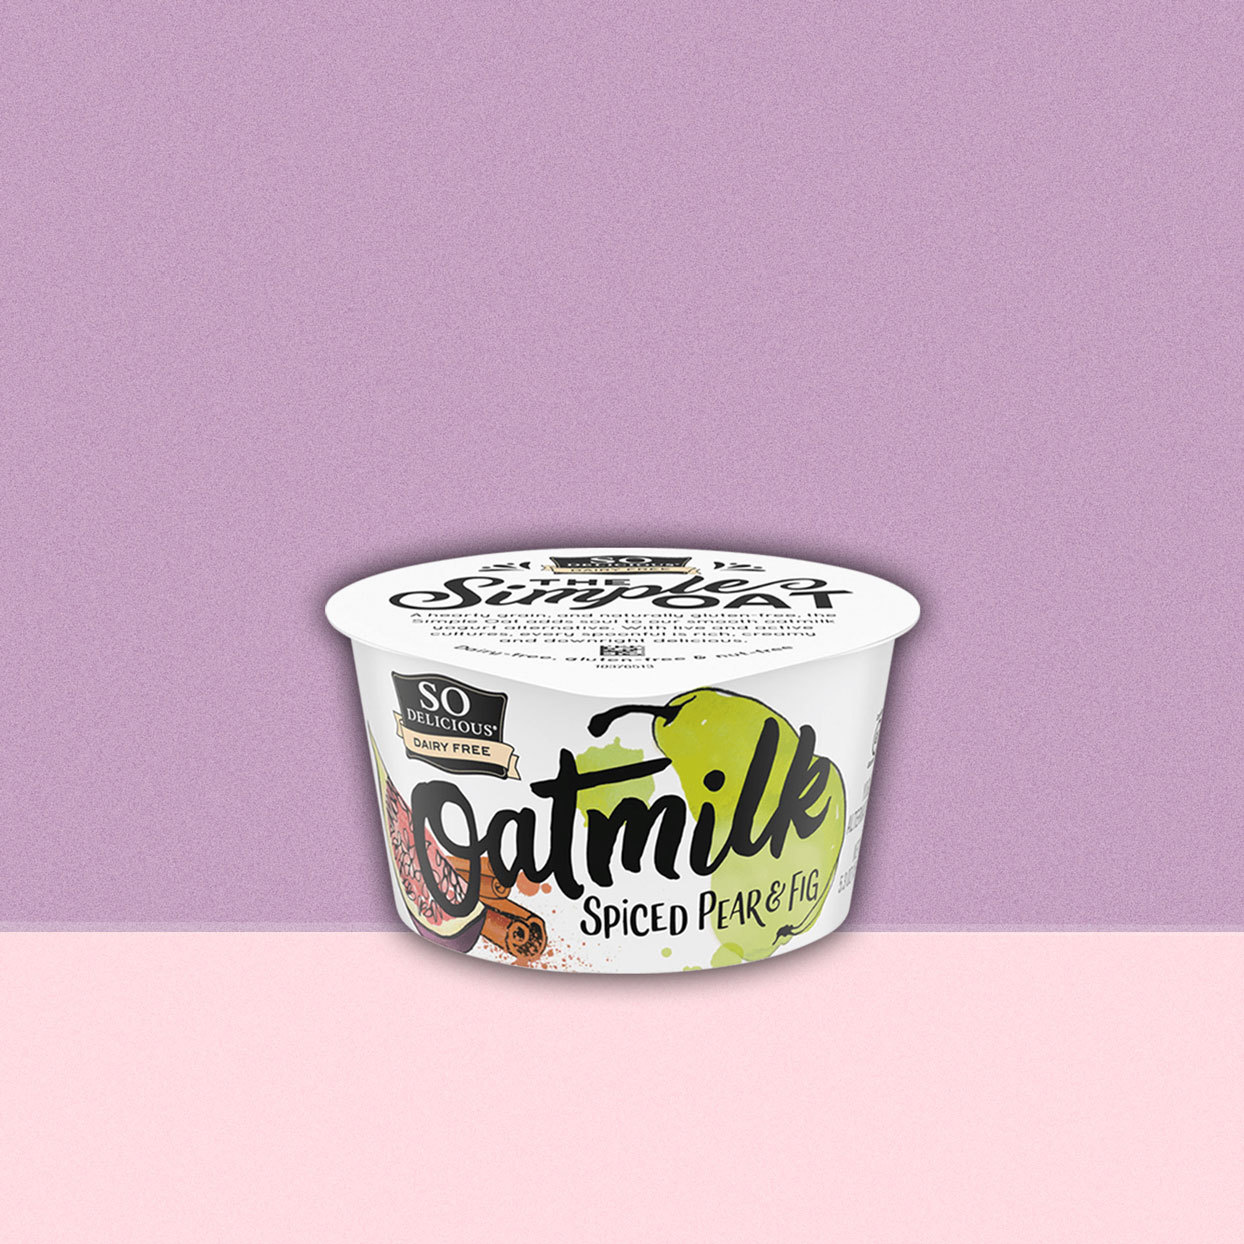 So Delicious brand Dairy Free Oatmilk yogurt, Spiced Pear & Fig flavor, in container